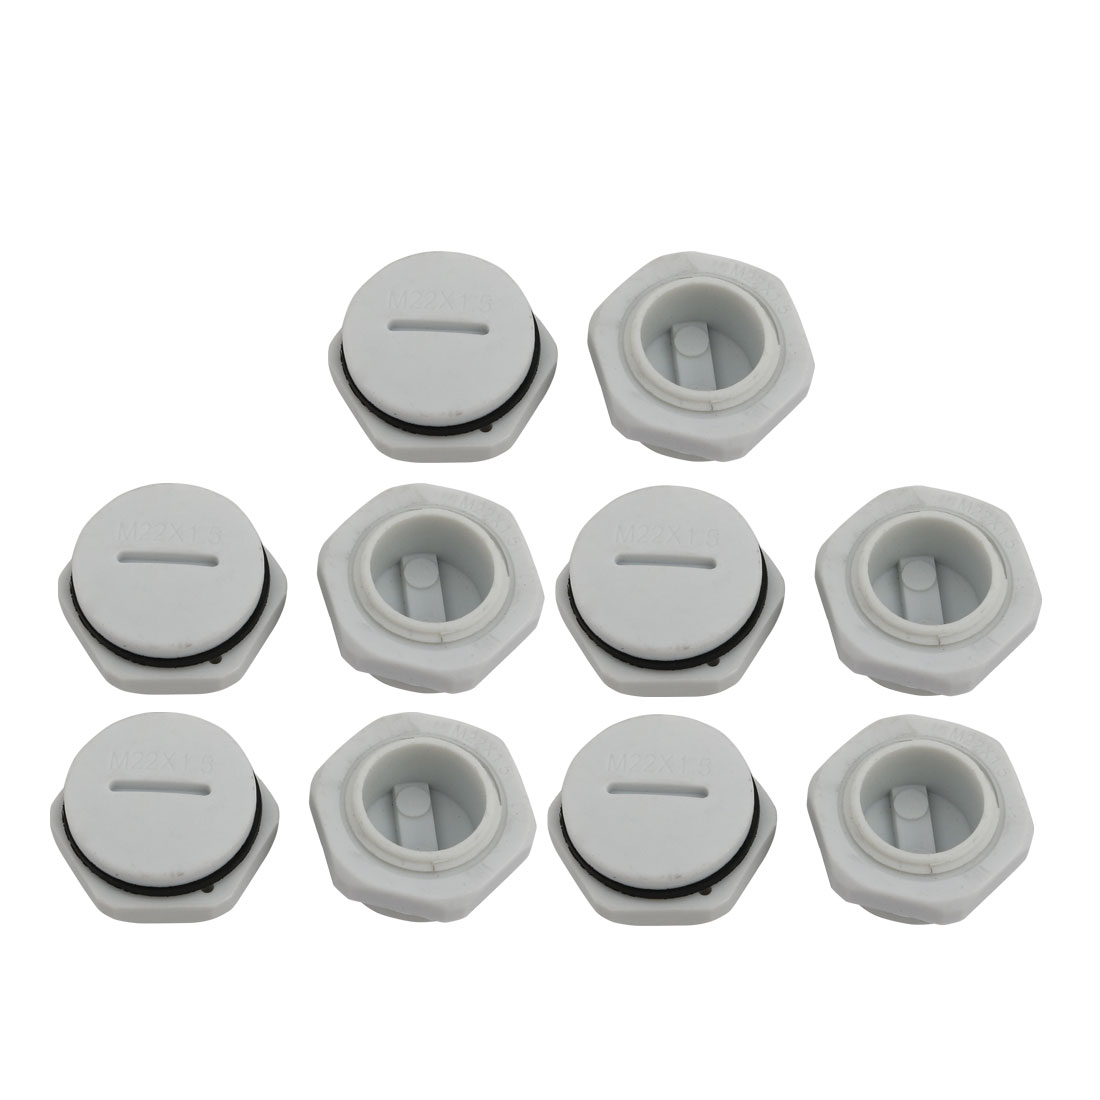 10pcs GLW-M22 Nylon Threaded Cable Gland Cap Round Screw-in Cover Gray w Washer